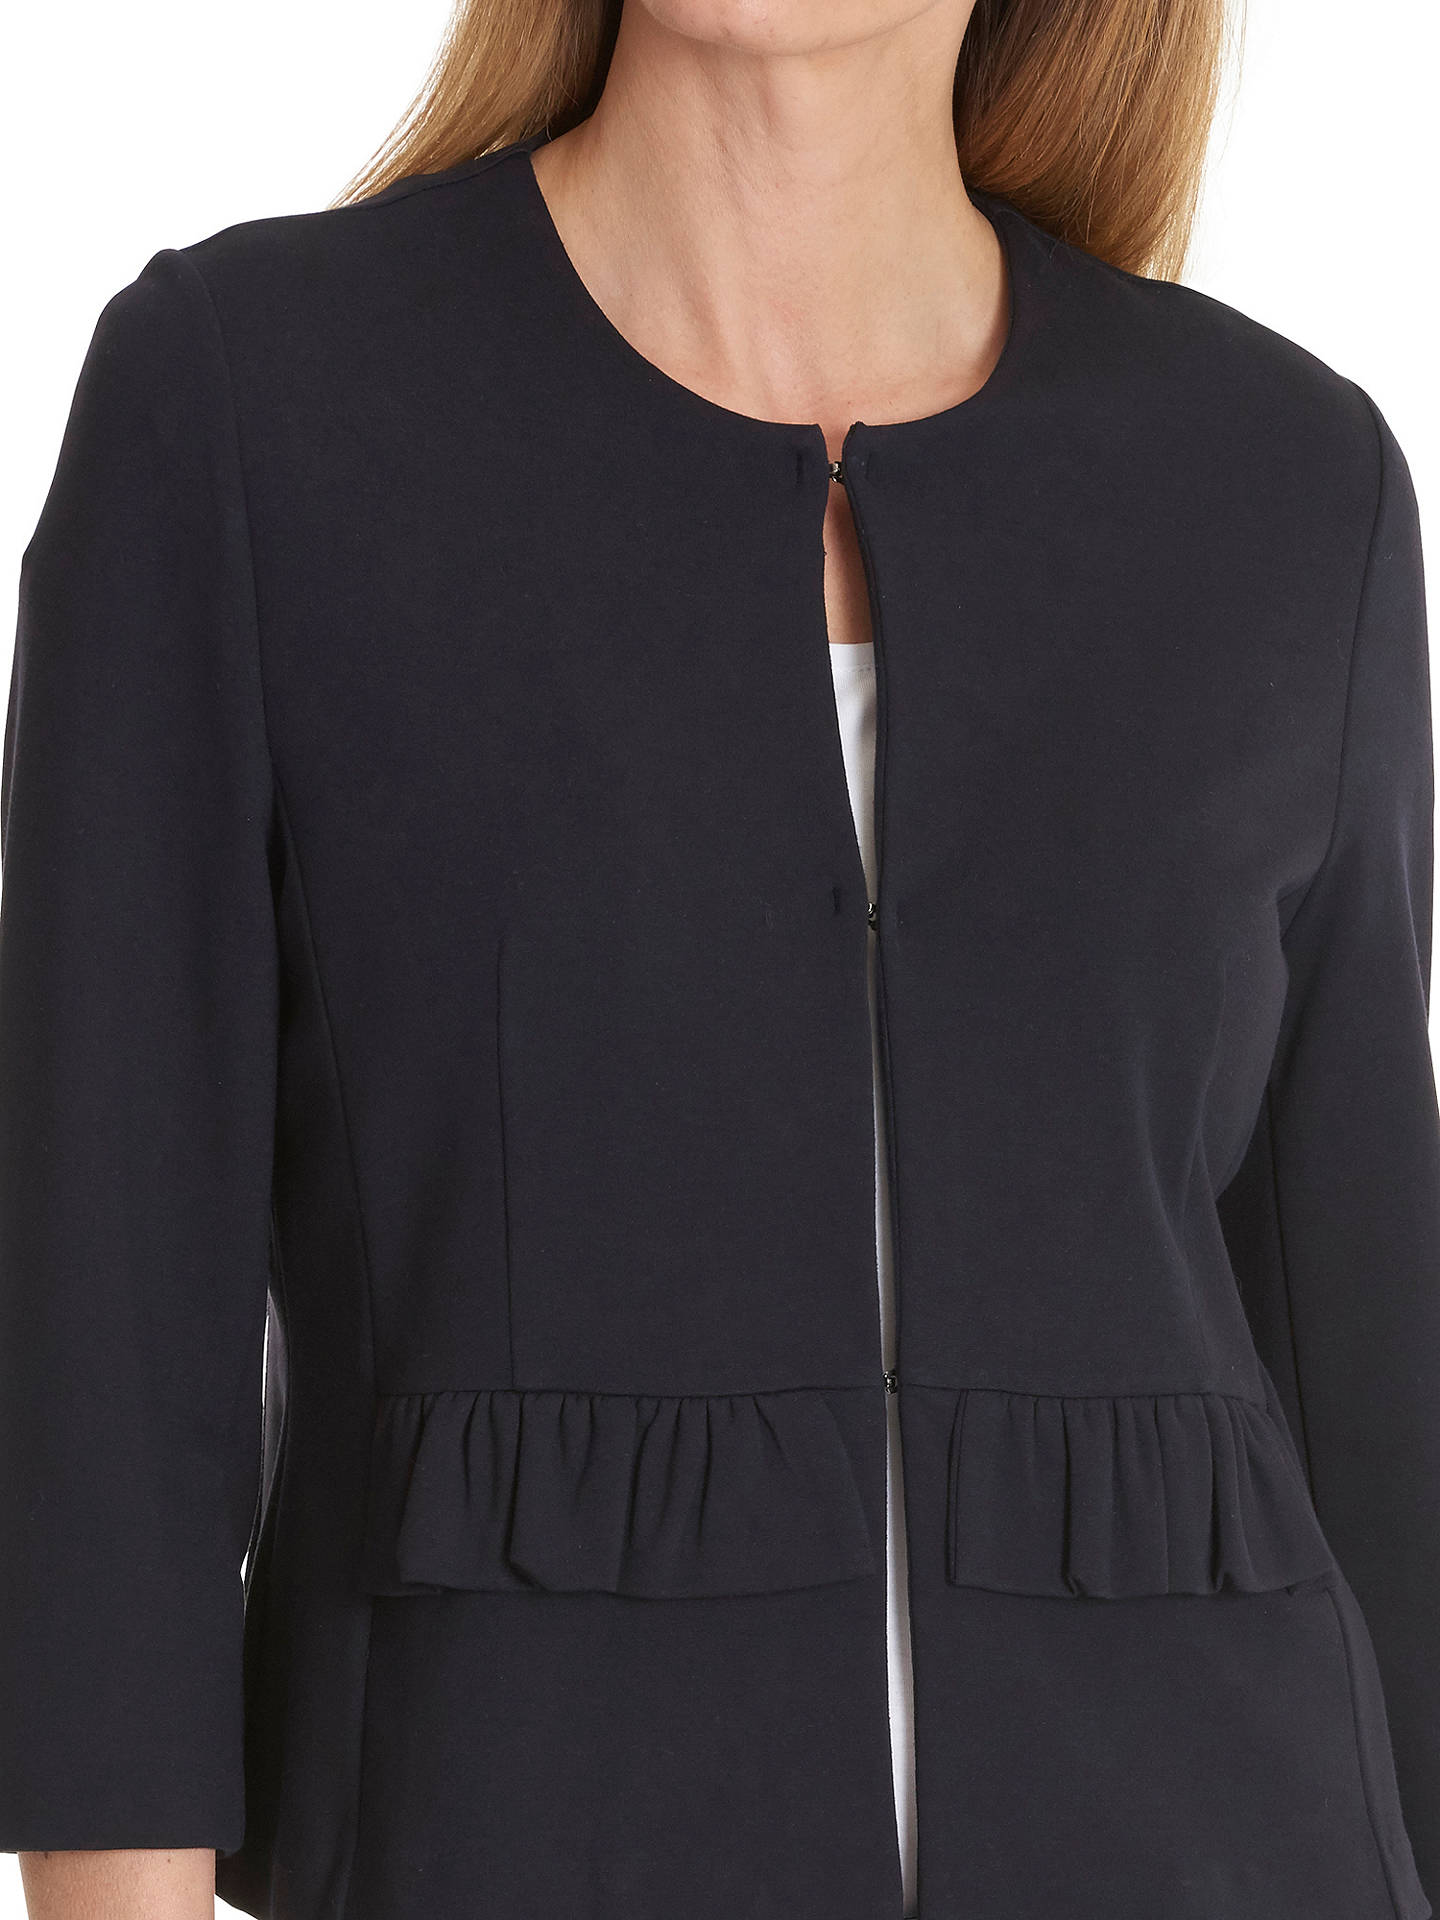 Buy Betty Barclay Frilled Jersey Jacket, Dark Sapphire, 10 Online at johnlewis.com